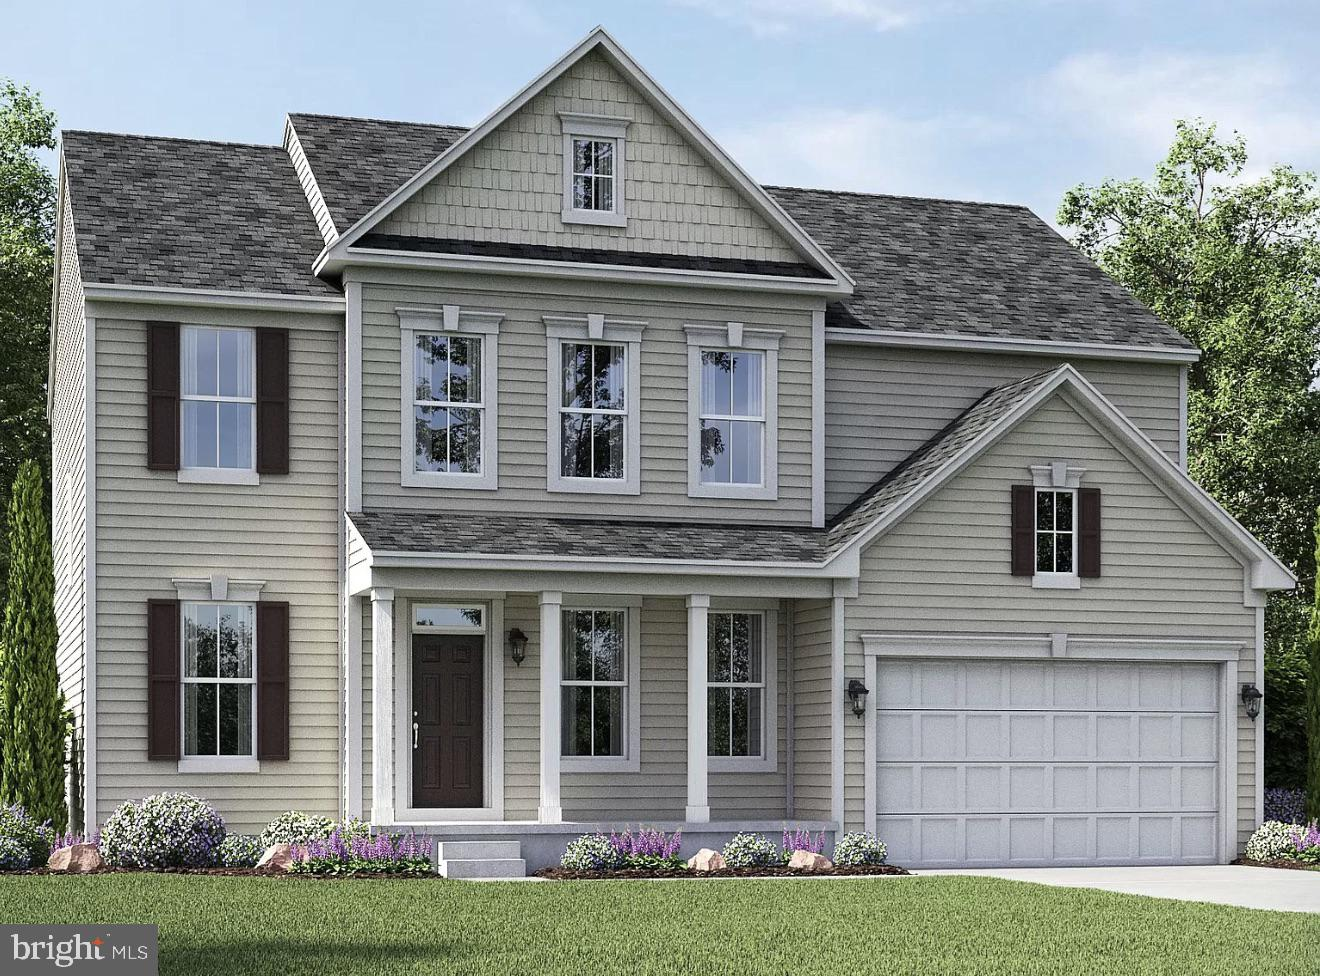 17090 OXLEY FARM ROAD, POOLESVILLE, MD 20837